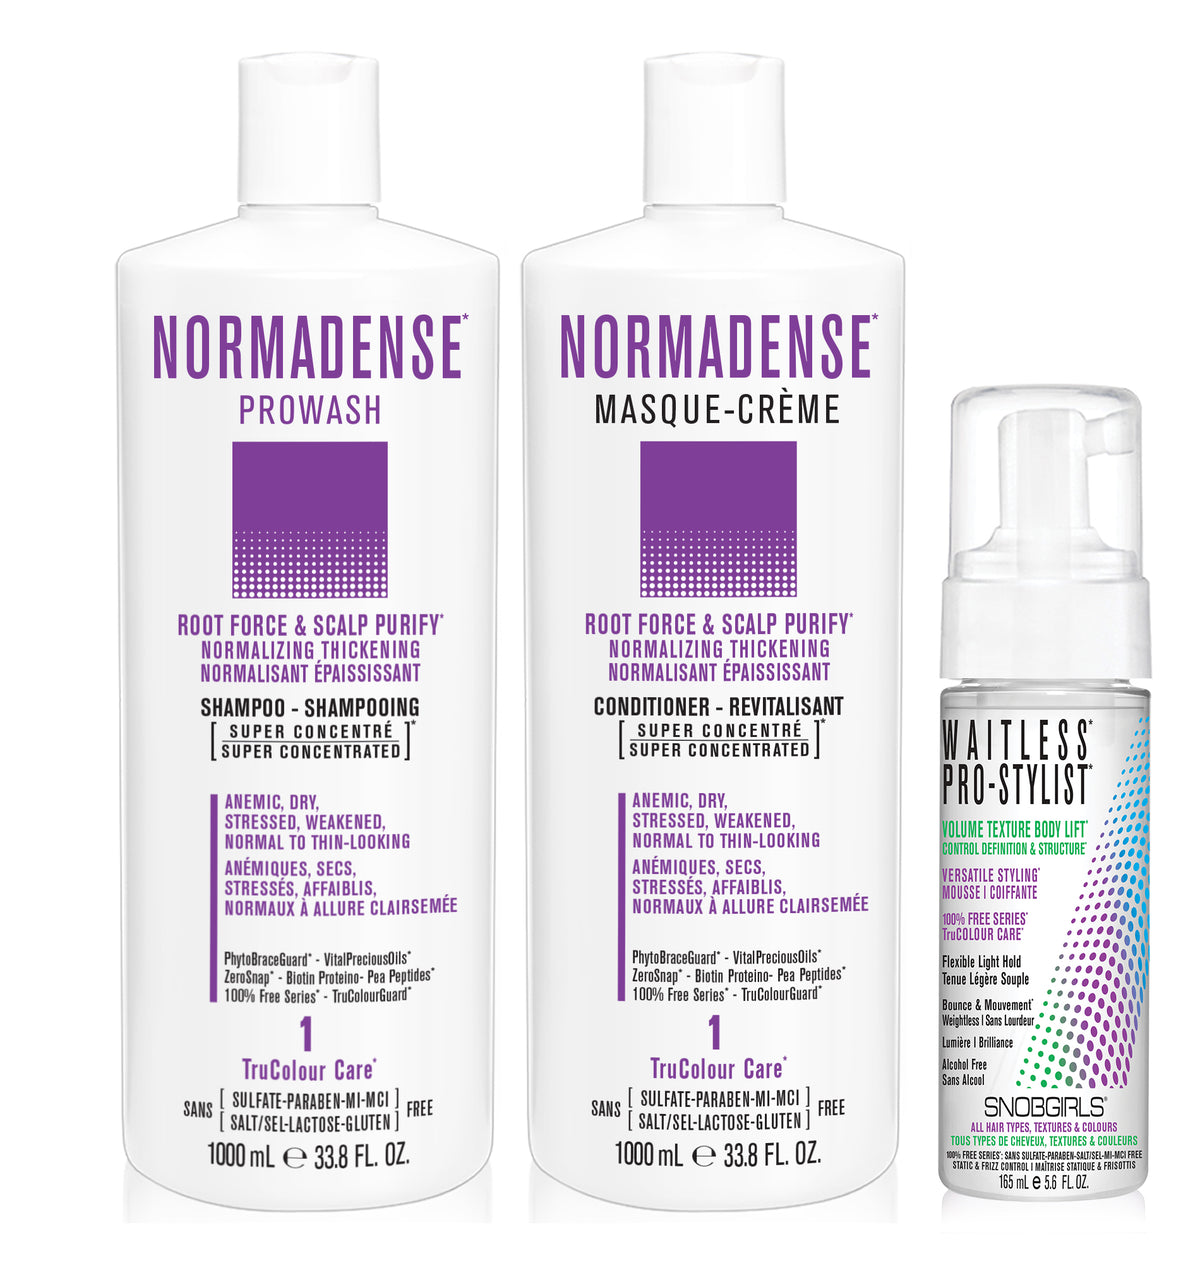 DUO NORMADENSE 1 Bundle- 1 Shampoo 33.8oz. with 1 Conditioner 33.8oz and 1 Styling Mousse - SNOBGIRLS.com